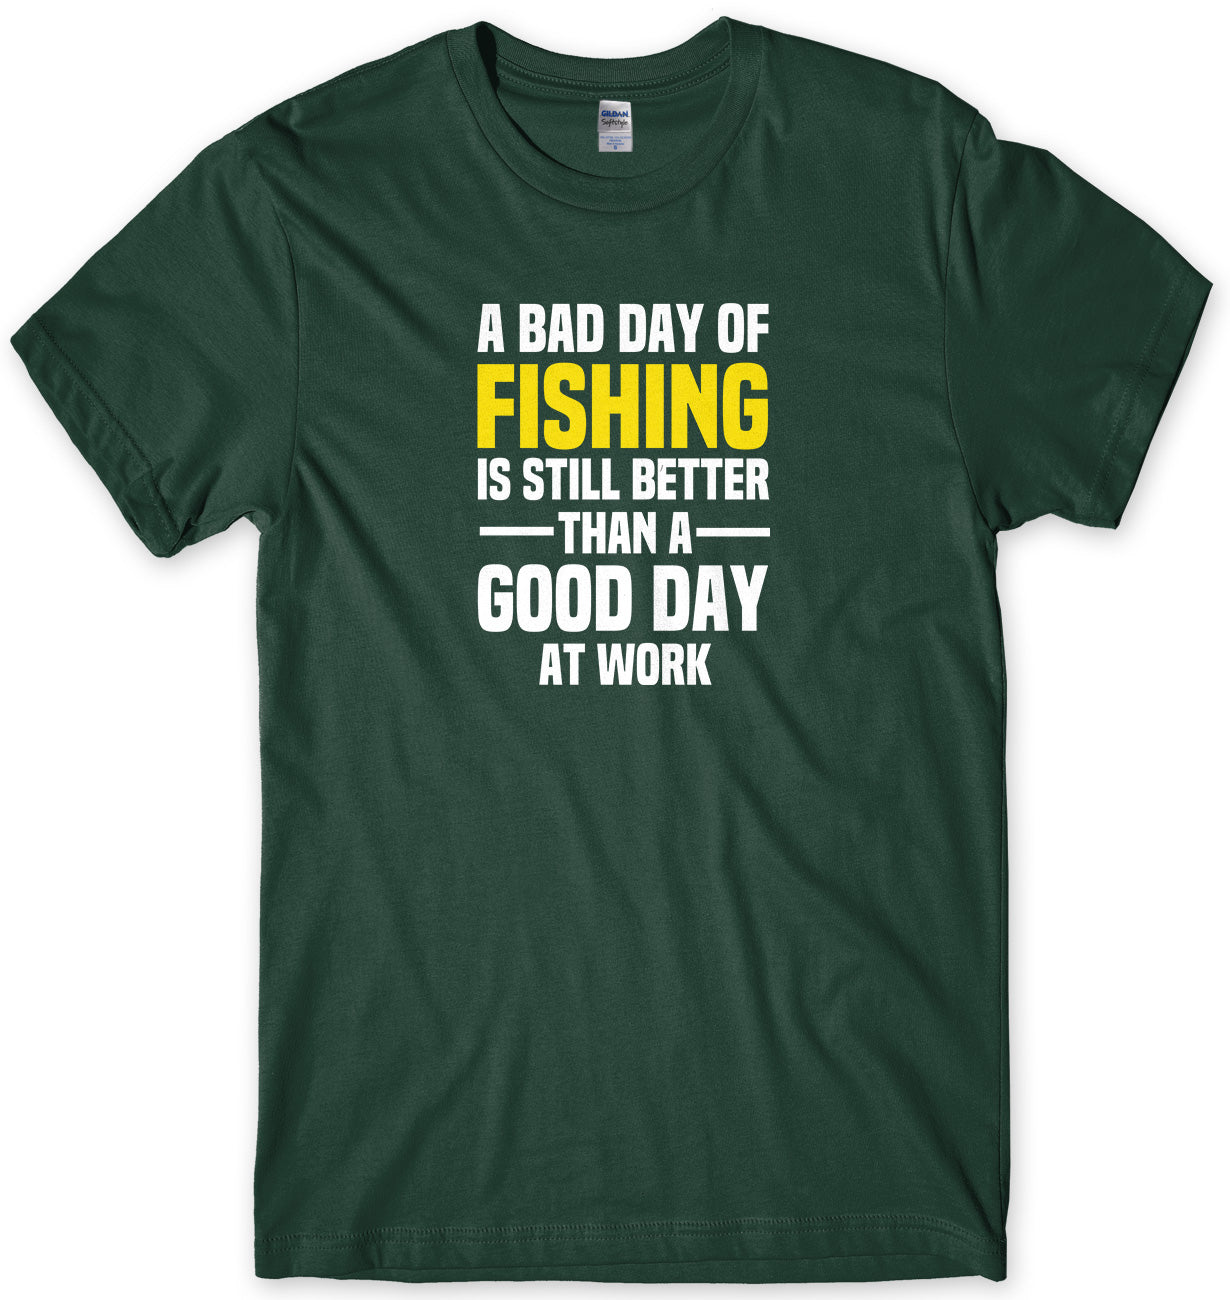 A BAD DAY OF FISHING IS STILL BETTER THAN A GOOD DAY AT WORK MENS FUNNY SLOGAN UNISEX T-SHIRT - StreetSide Surgeons